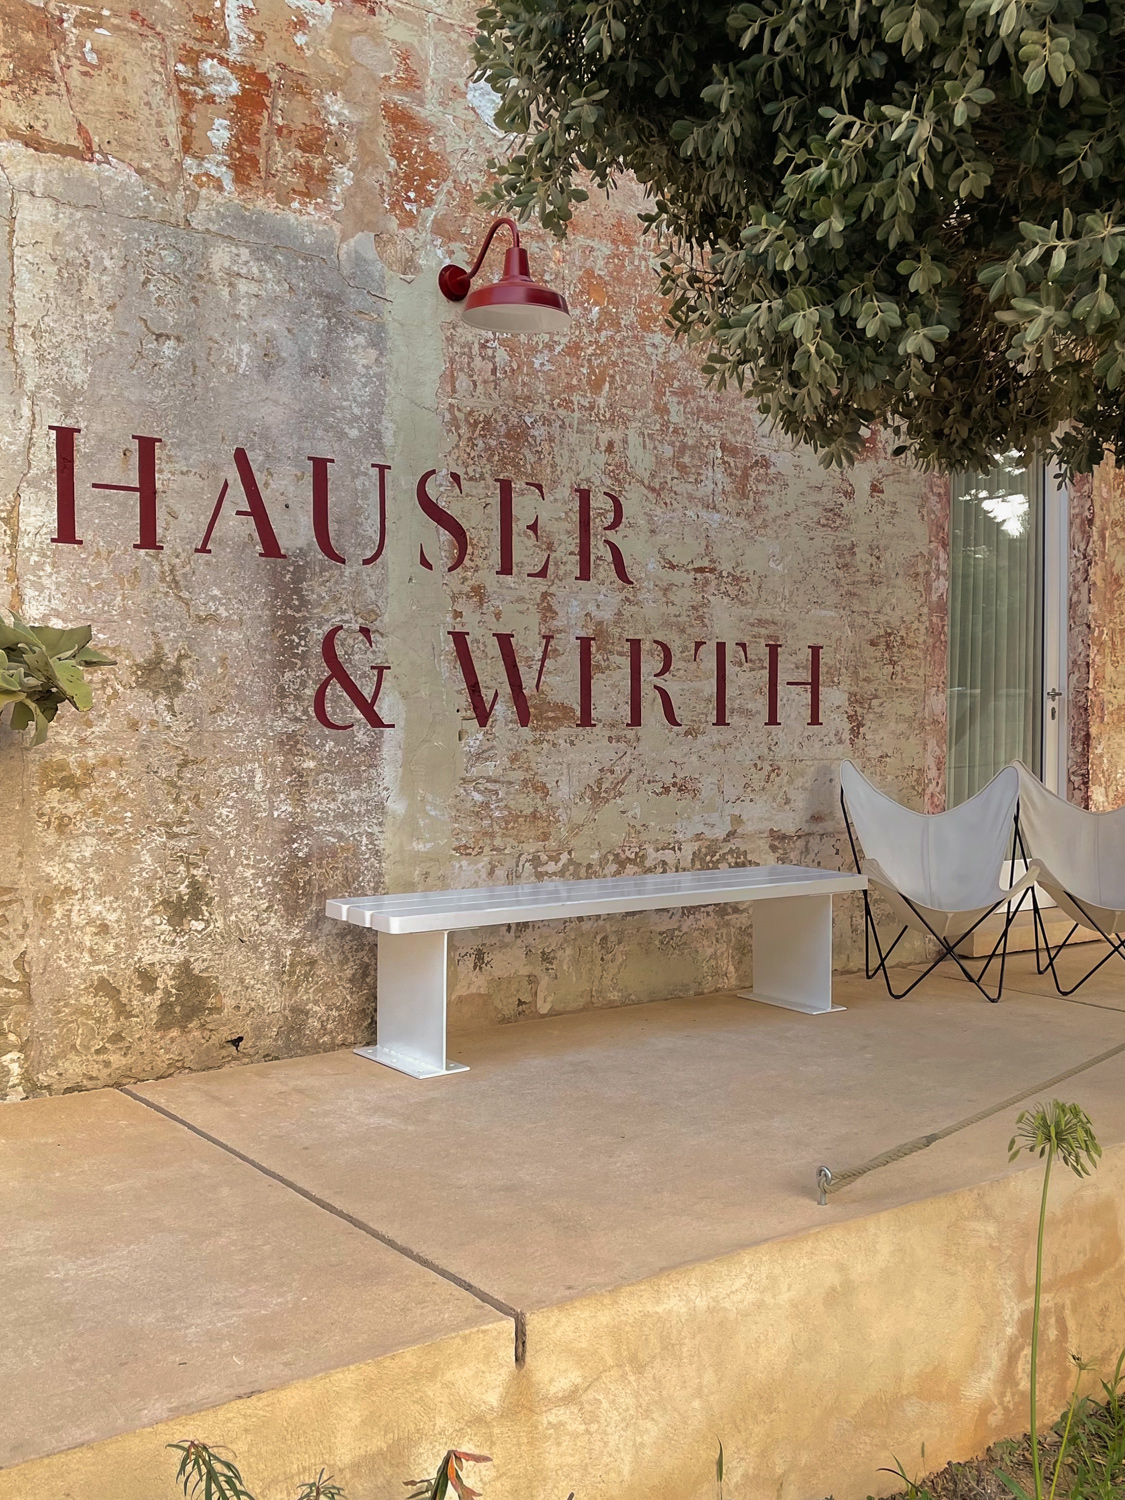 hauser-and-wirth-menorca-museo-lugares-slowkind-03